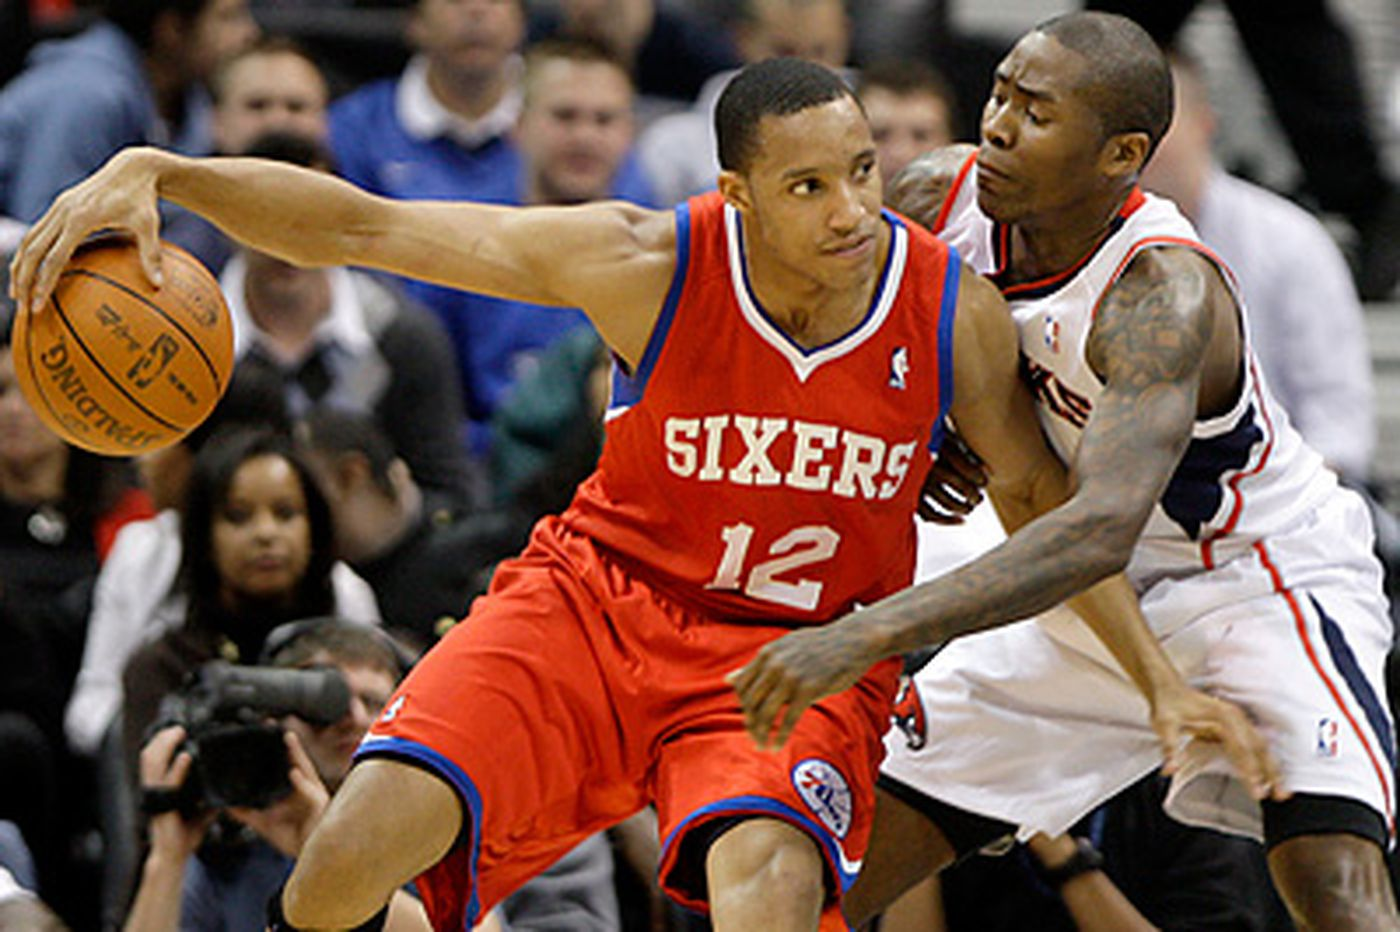 Bob Cooney: Sixers rookie Turner showing progress